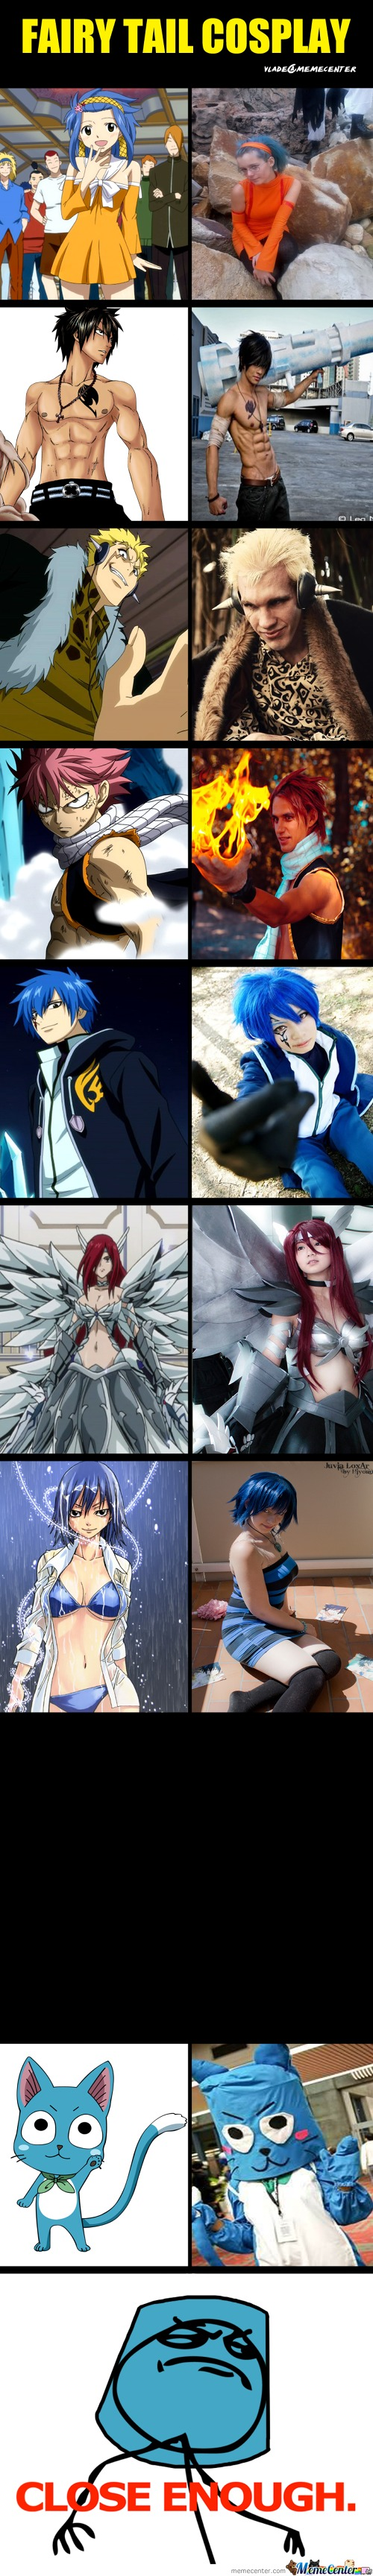 Fairy Tail Cosplay